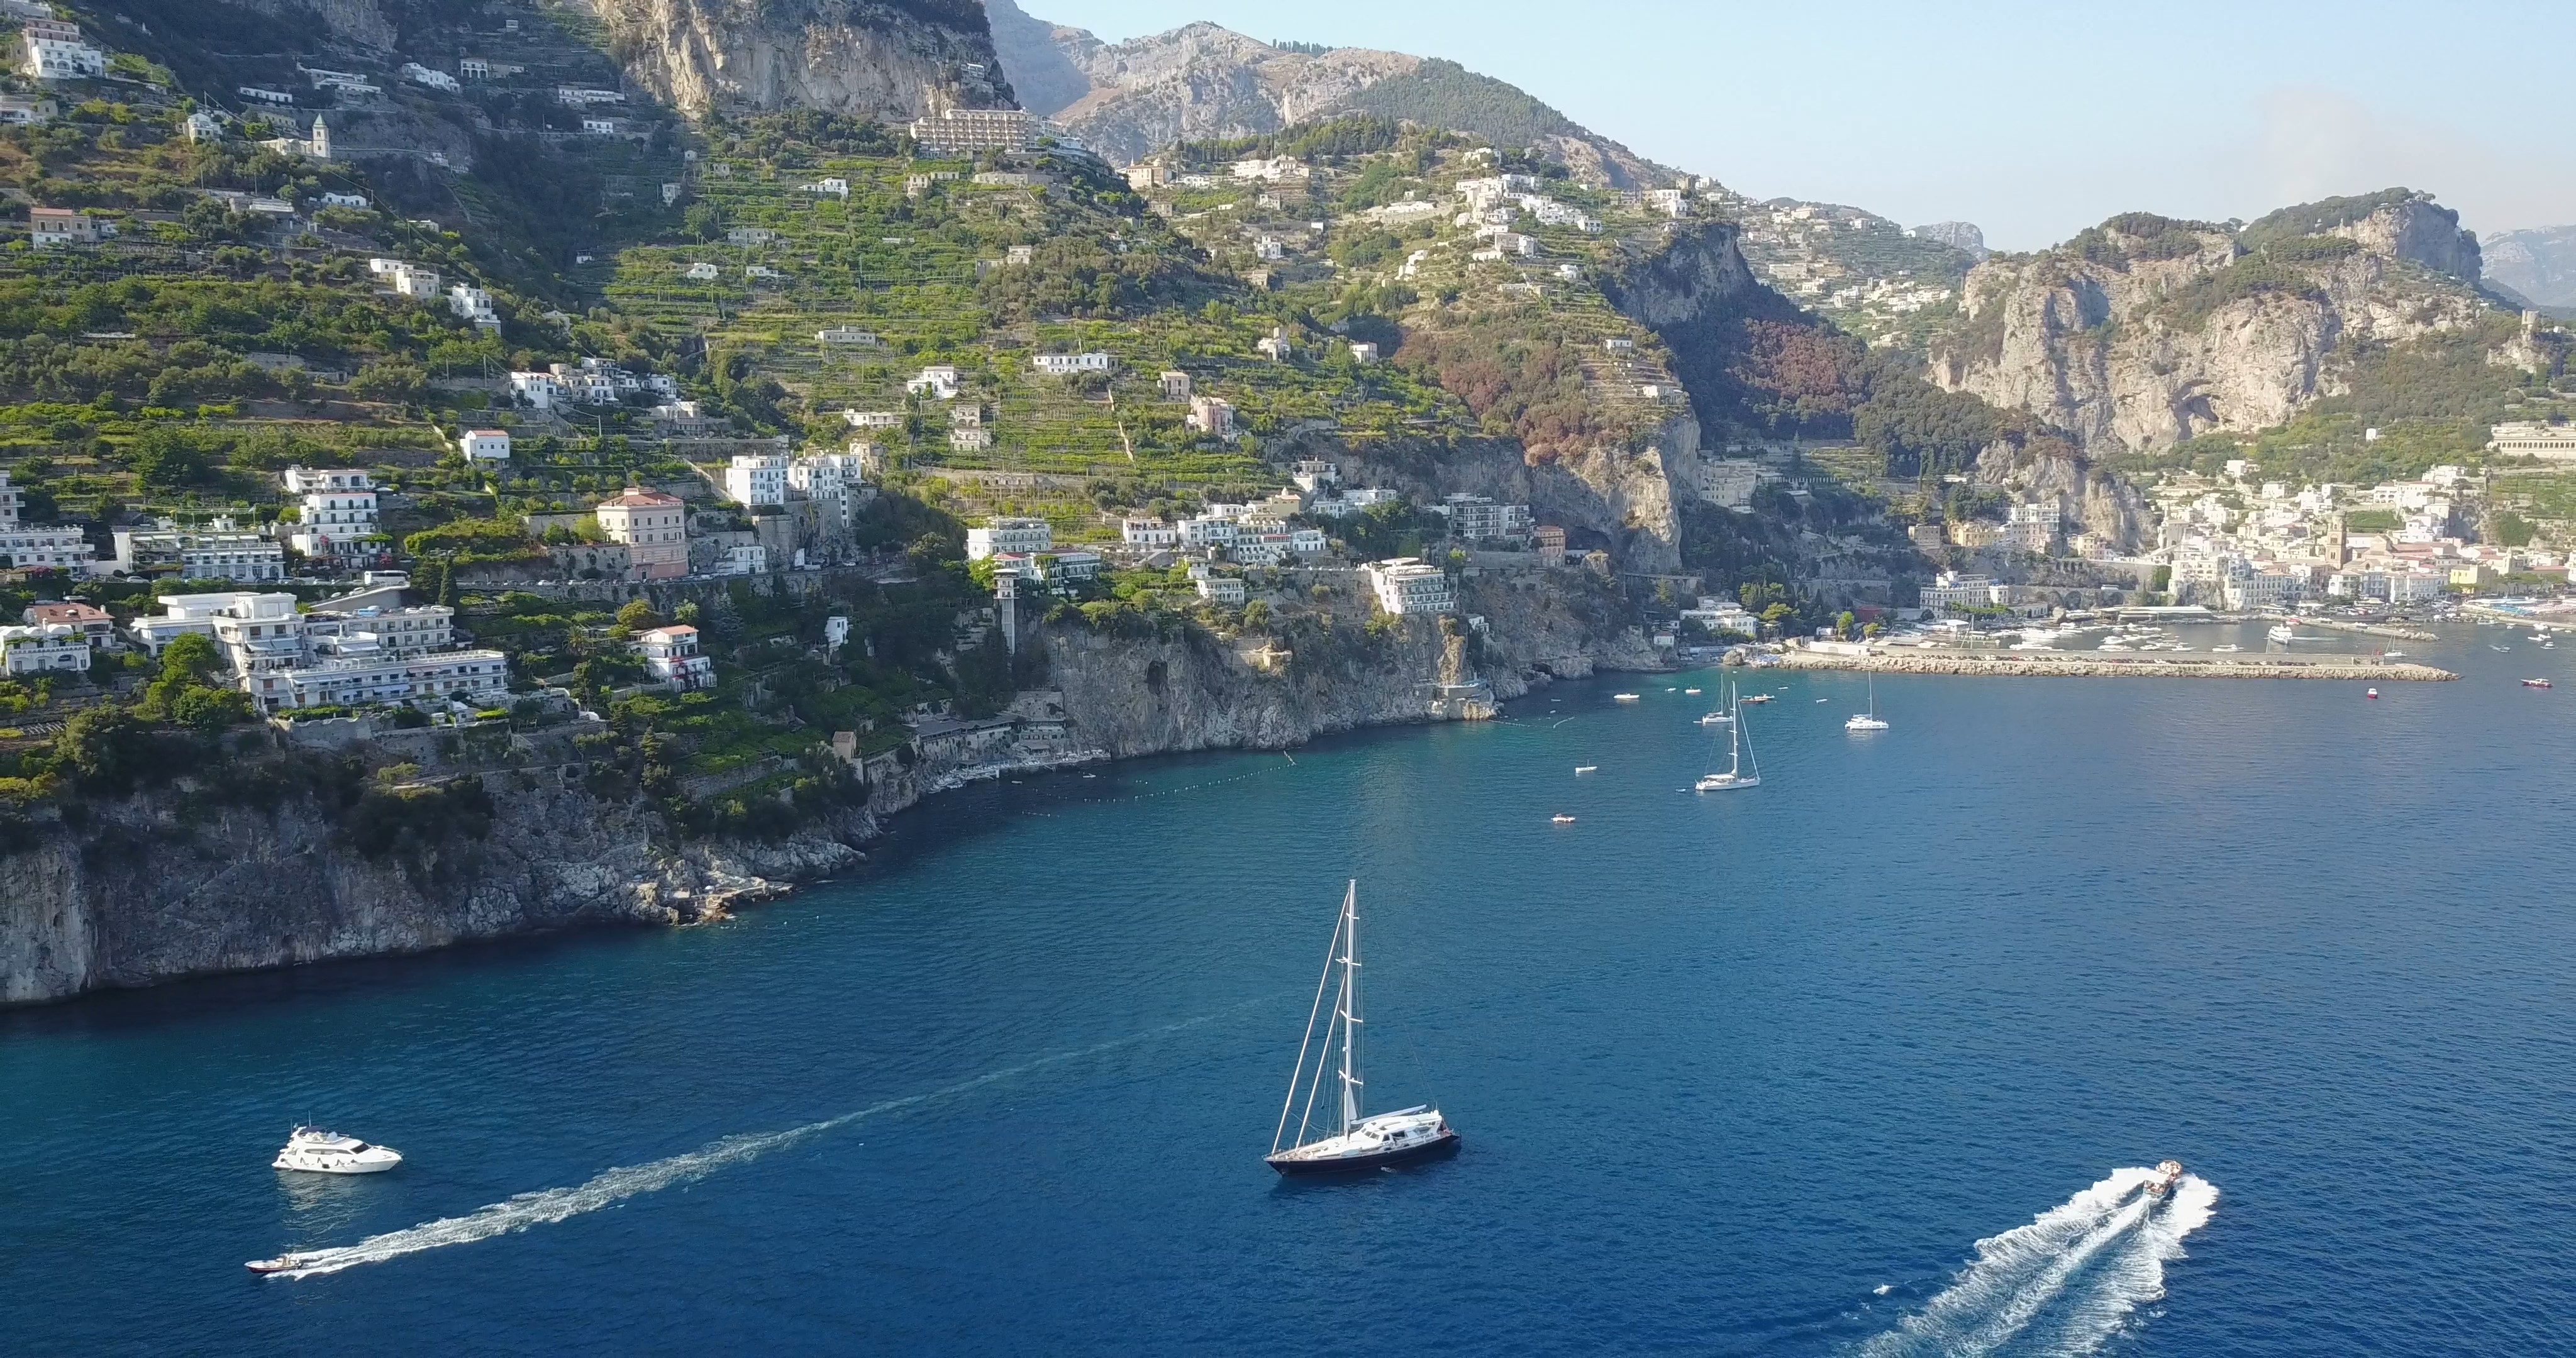 Anchored off the Amalfi Coast